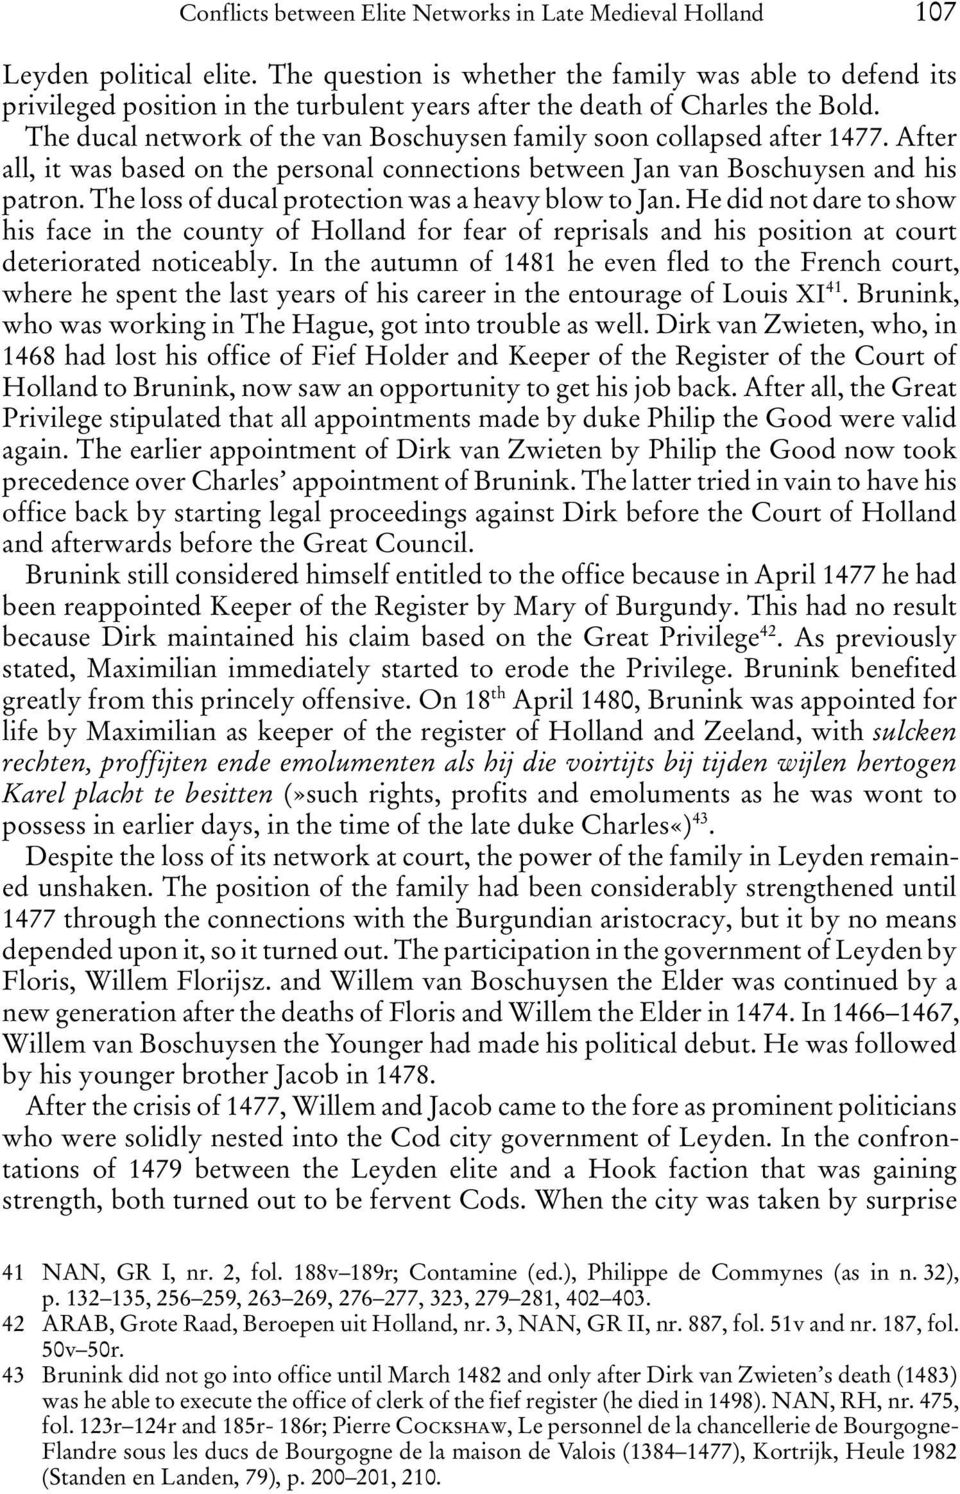 The ducal network of the van Boschuysen family soon collapsed after 1477. After all, it was based on the personal connections between Jan van Boschuysen and his patron.